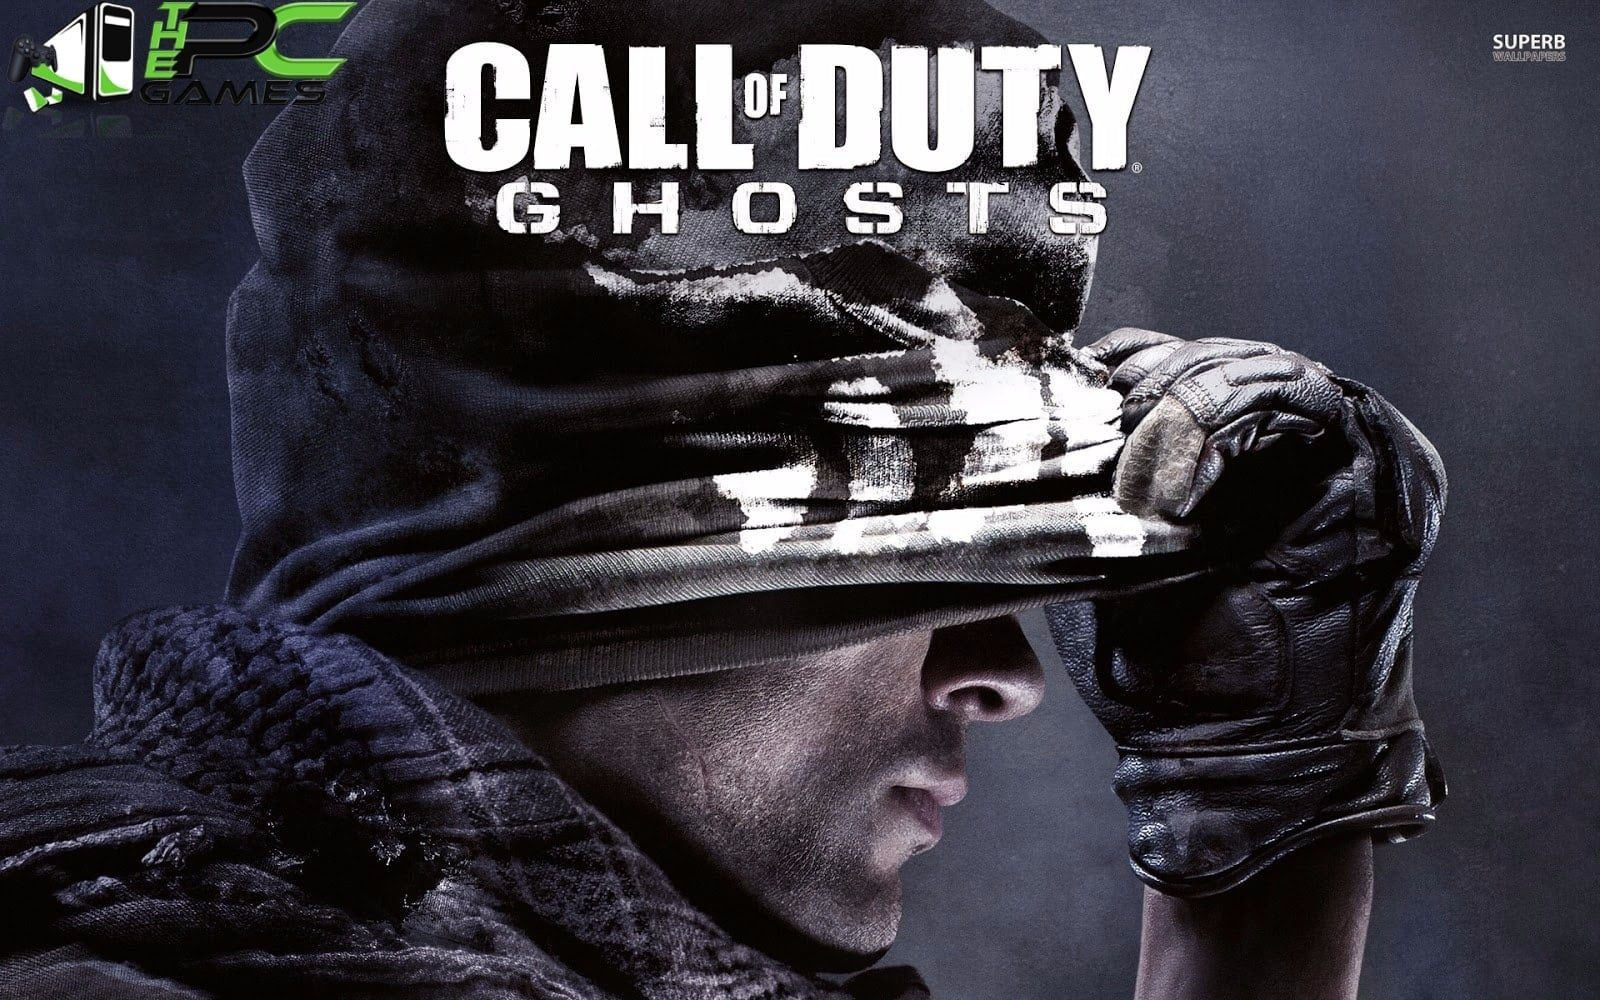 call-of-duty-ghost-pc-game-free-download-min-4295774